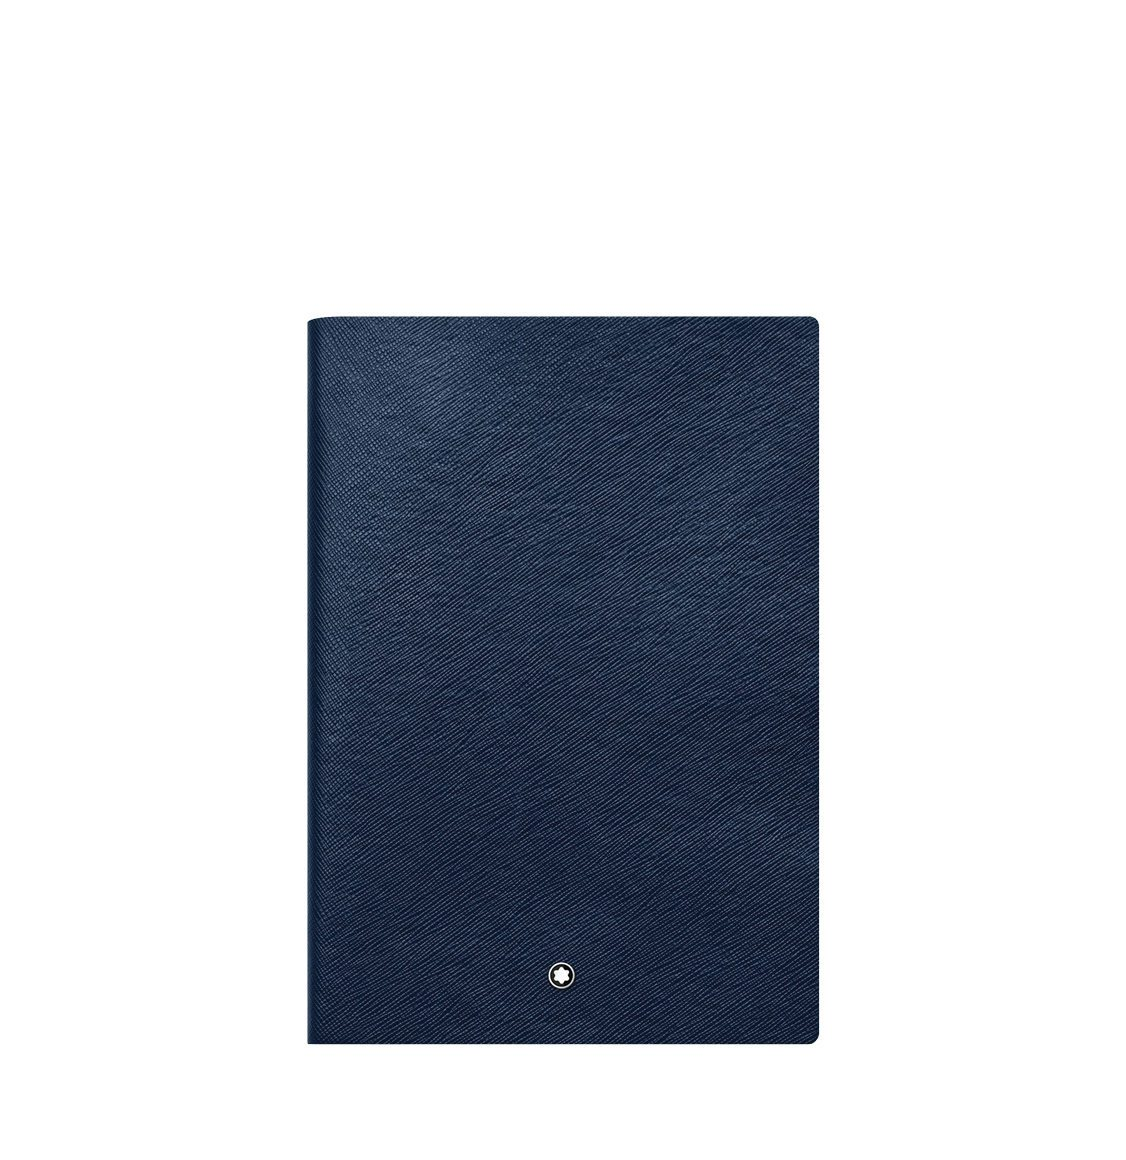 Montblanc Fine Stationery Sketch Book Indigo Blank